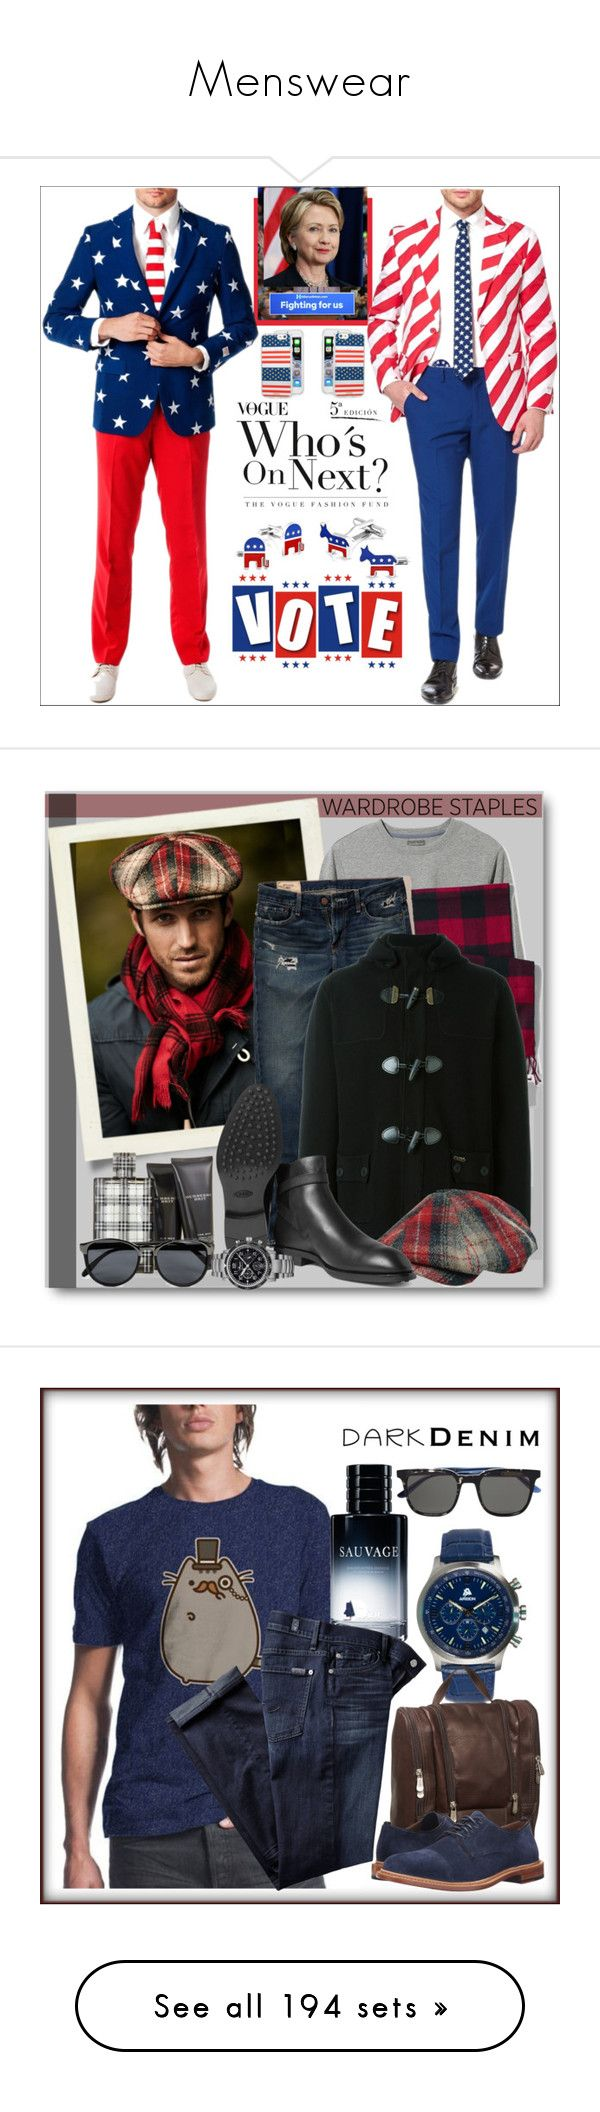 """""""Menswear"""" by yours-styling-best-friend ❤ liked on Polyvore featuring menswear, MensFashion, Cufflinks, Inc., OppoSuits, Bling Jewelry, Sonix, men's fashion, L.L.Bean, Hollister Co. and Lands' End"""